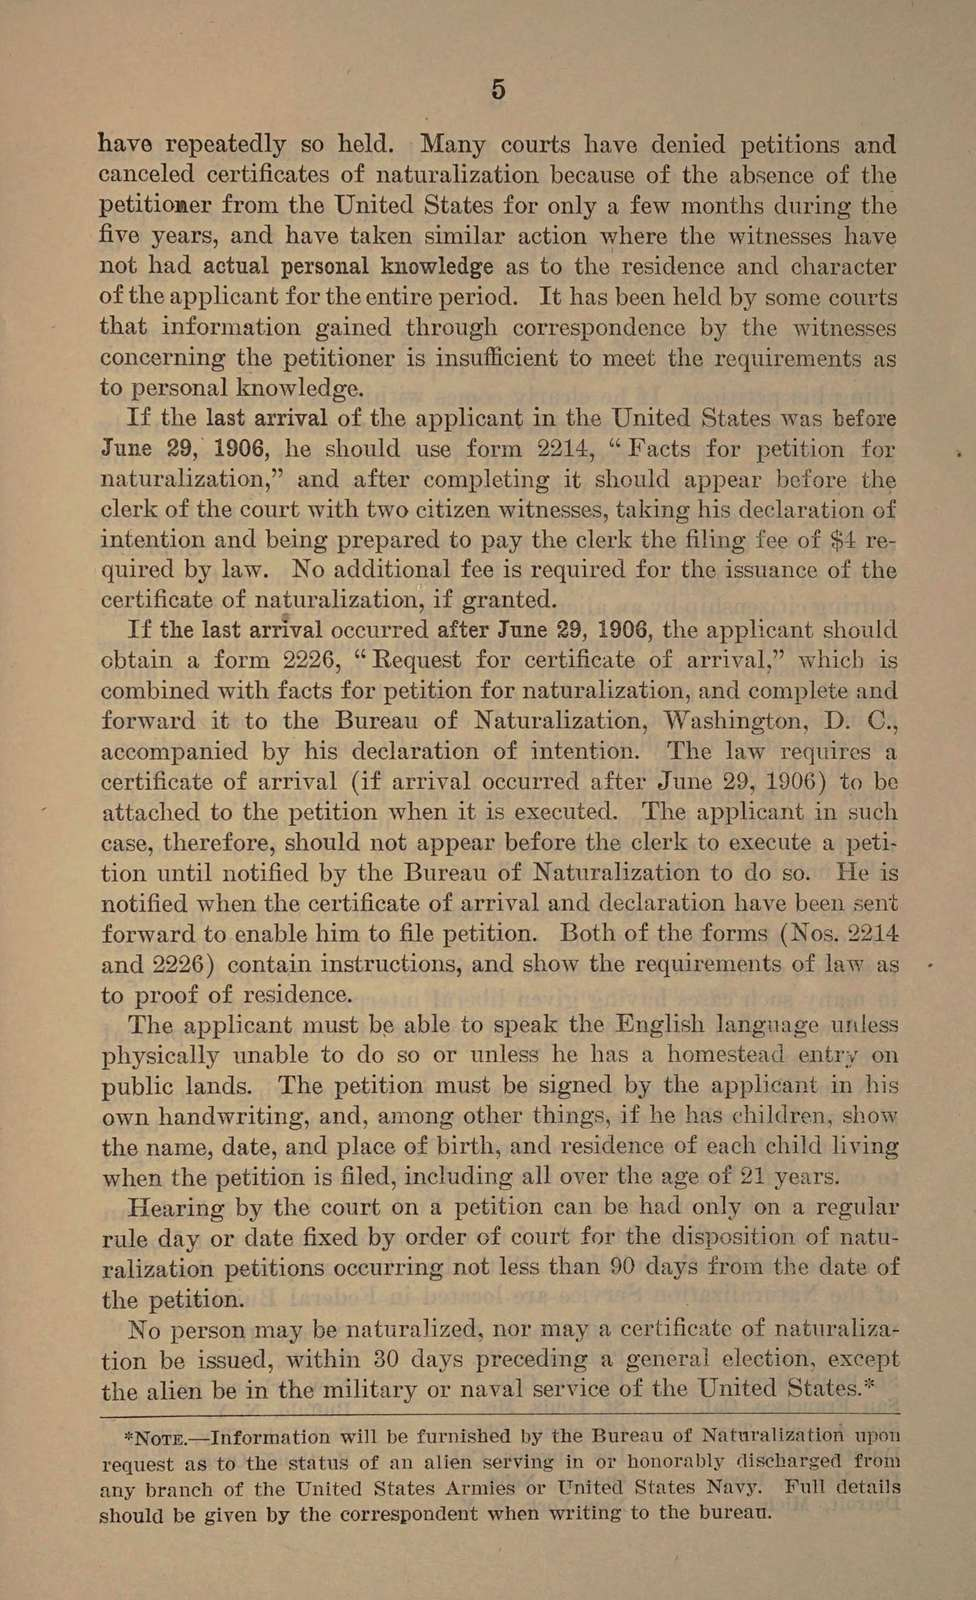 Syllabus of the naturalization law: an aid to public-school teachers in the instruction of aliens in the requirements of the naturalization law